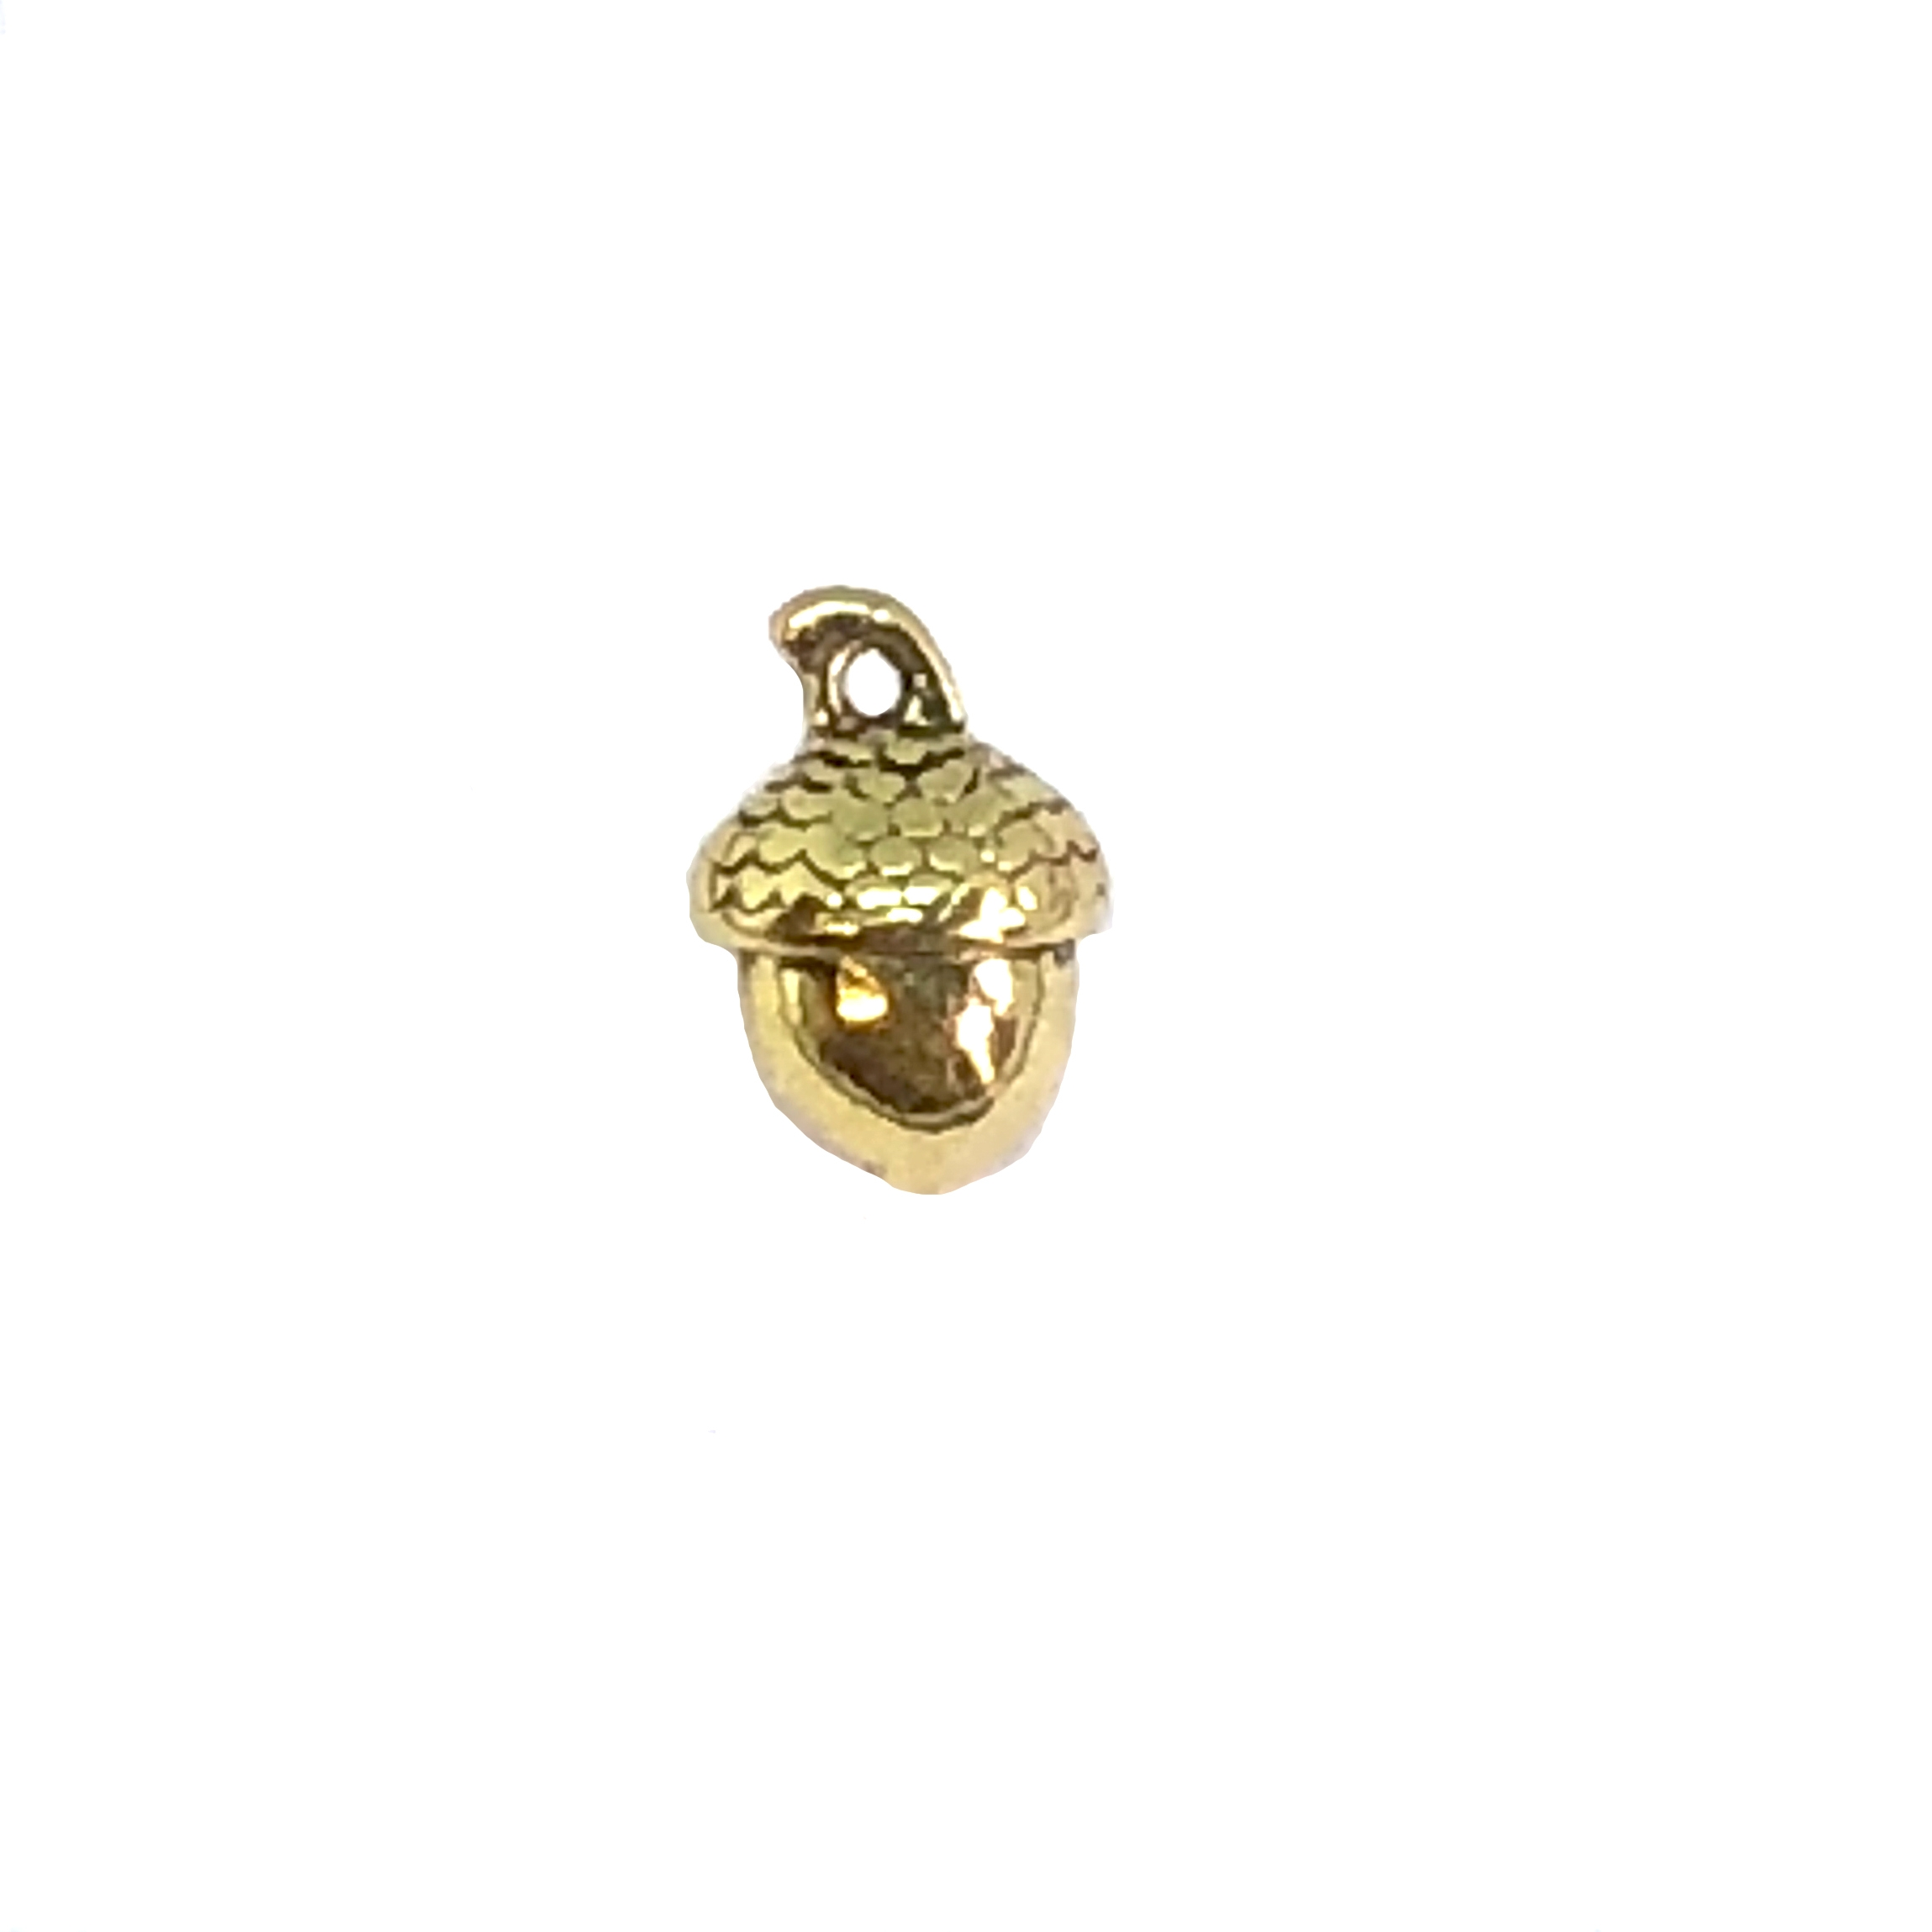 cast acorn charms, heavy gauge, gold plate, 07857, jewelry making supplies, cast jewelry, bsueboutiques, steampunk art, vintage jewelry supplies, charm accents, acorn charms,